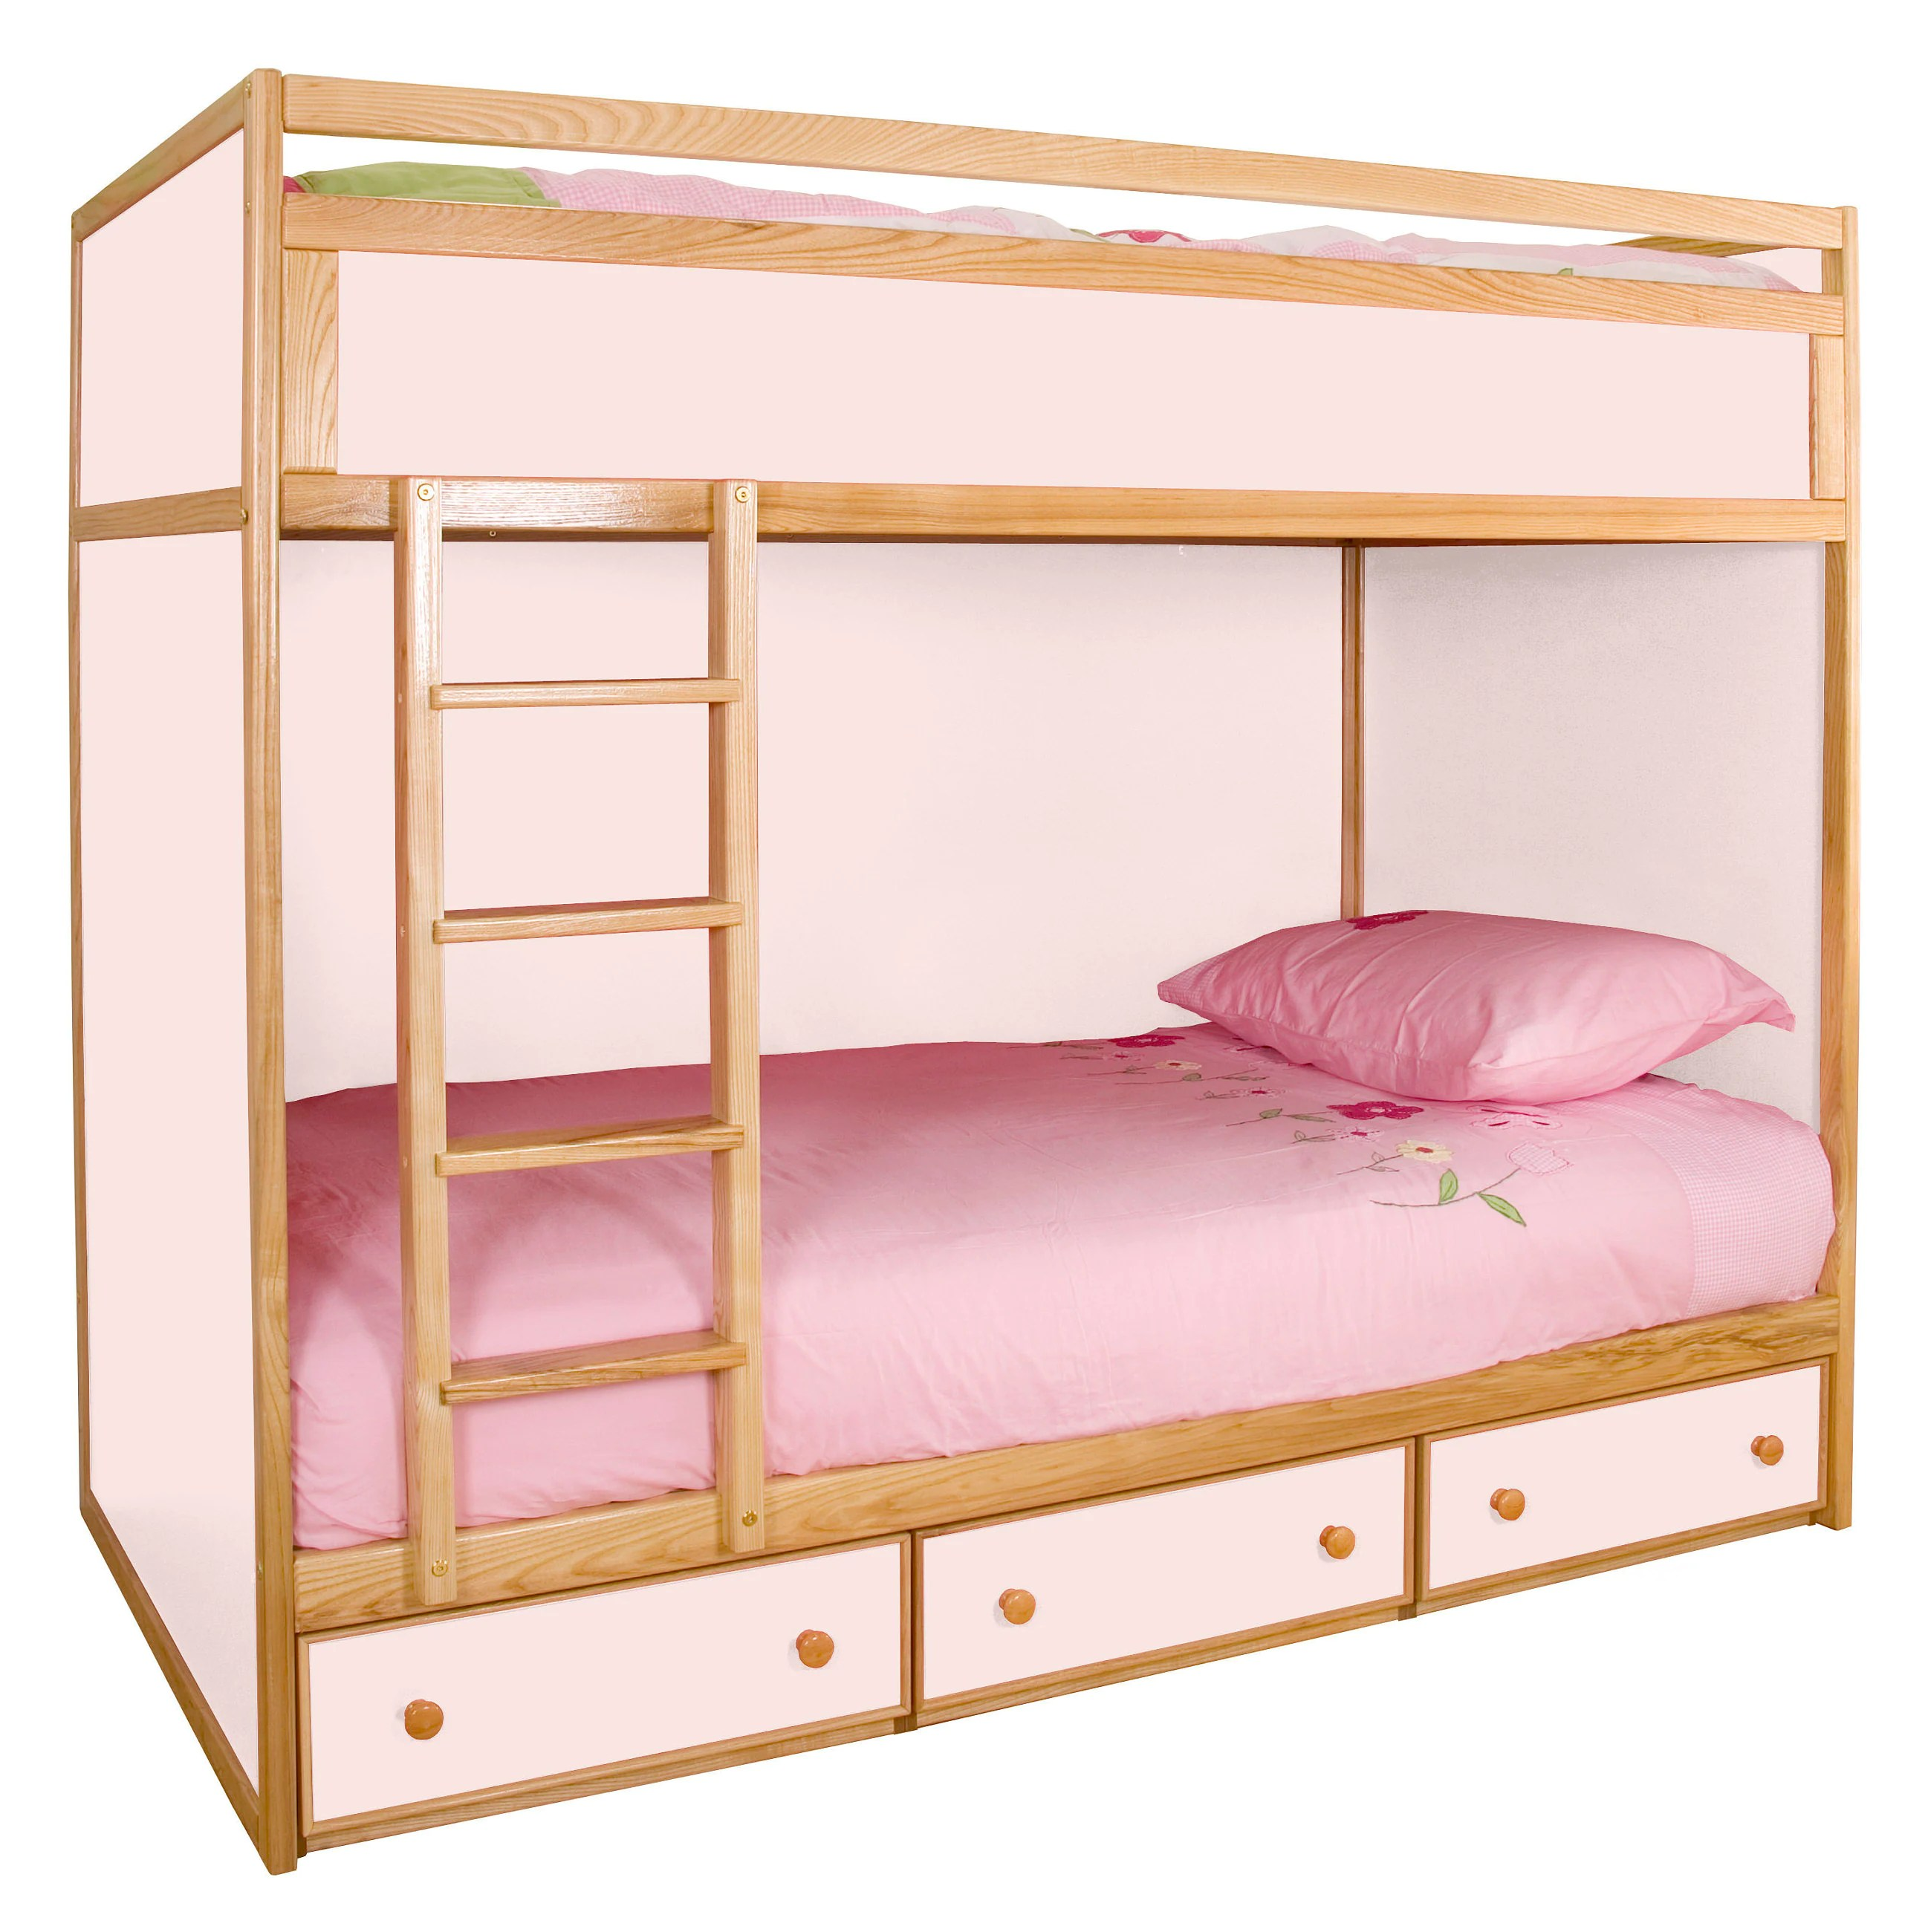 2ft 6 Cabin Bed Pink Bunk Bed Kids Bunk Bed Bunk Bed With Drawers